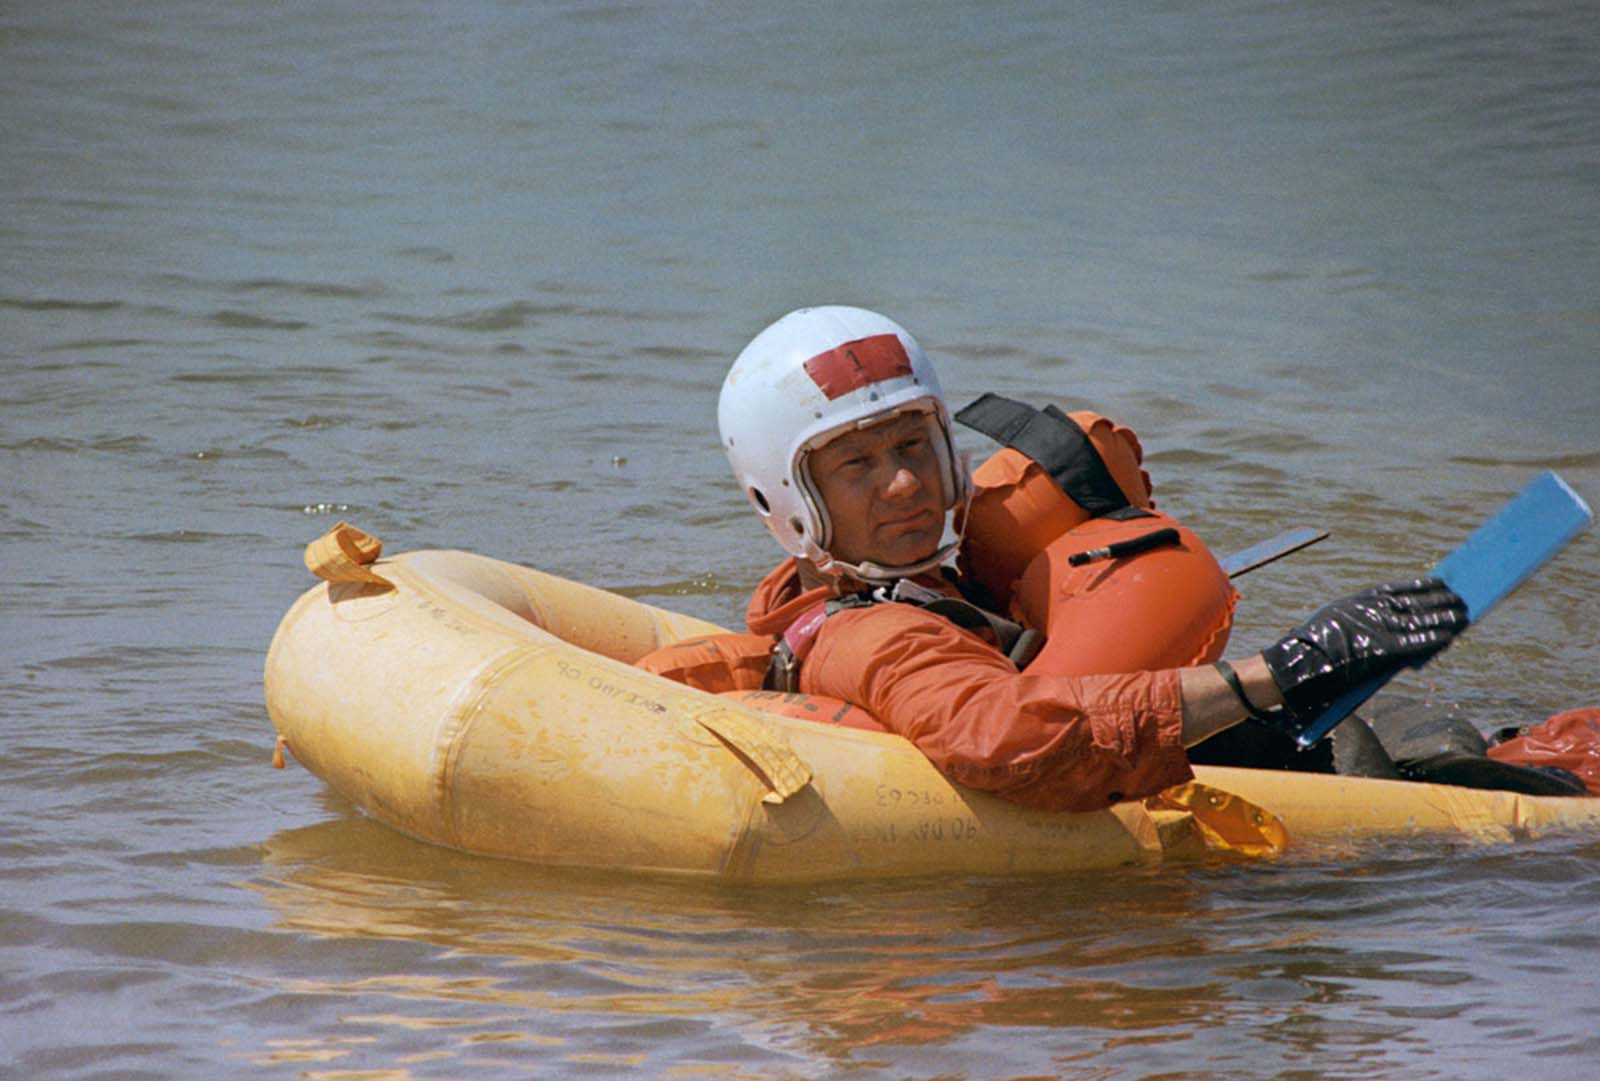 The astronaut Buzz Aldrin paddles to the shore of Lake Texoma during training at the U.S. Air Force Air Defense Command Life Support School at Perrin Air Force Base in Sherman, Texas. He sits in a one-man life raft. He was dropped into the water after making a parasail ascent some 400 feet above the lake.